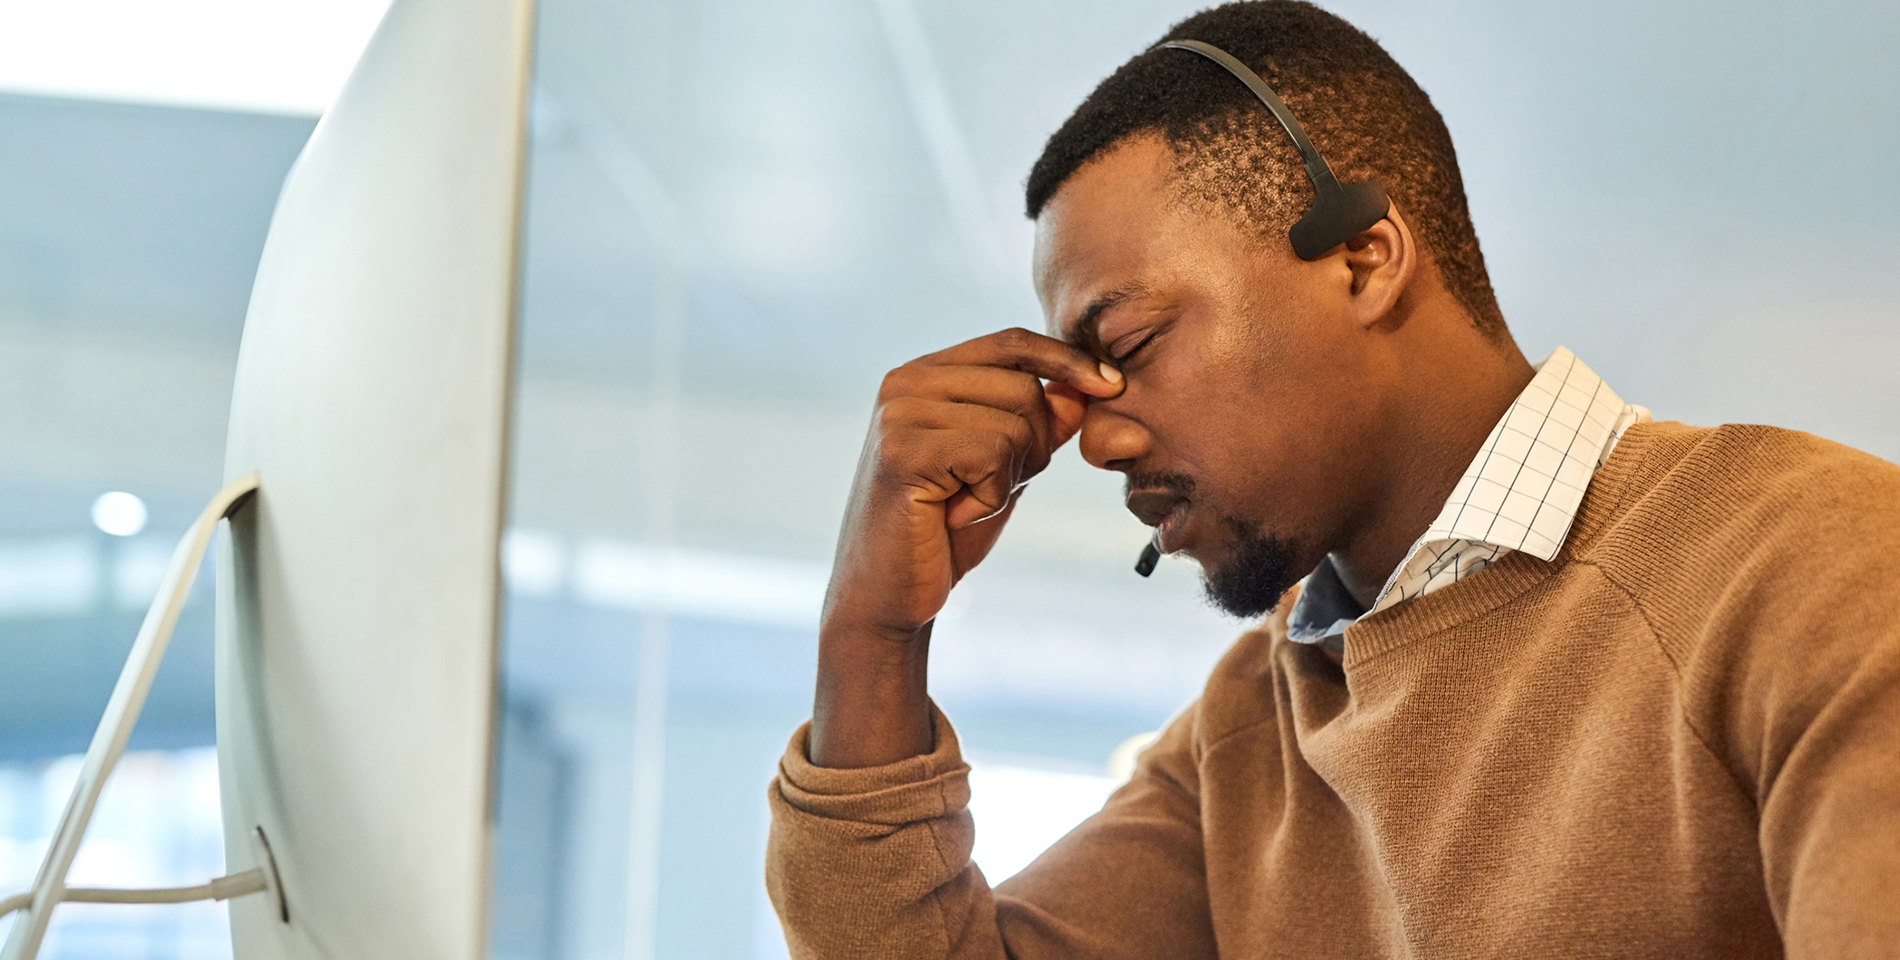 Frustrated man working at laptop - Why Do Insurers Struggle to Create Personalized Letter Correspondence